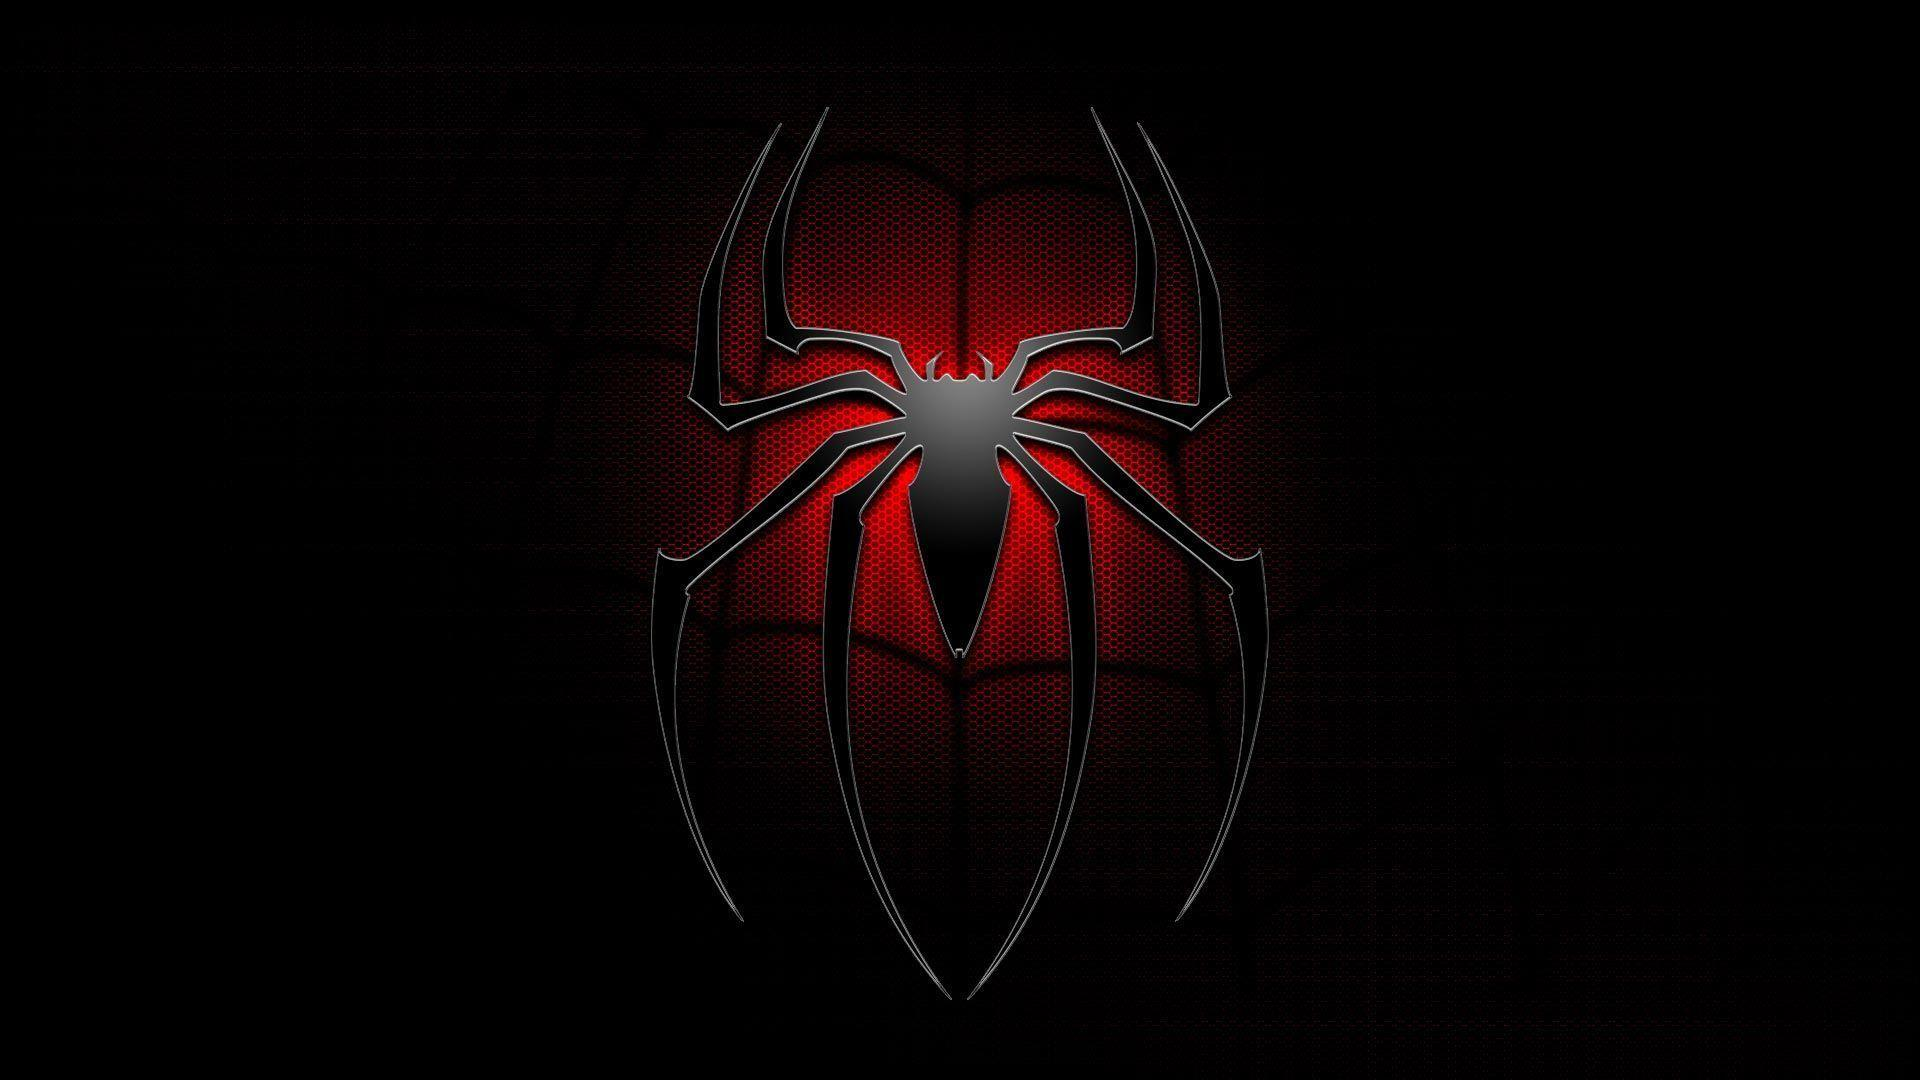 Download Wallpaper High Resolution Spiderman - scVZrxX  Collection_421657.jpg